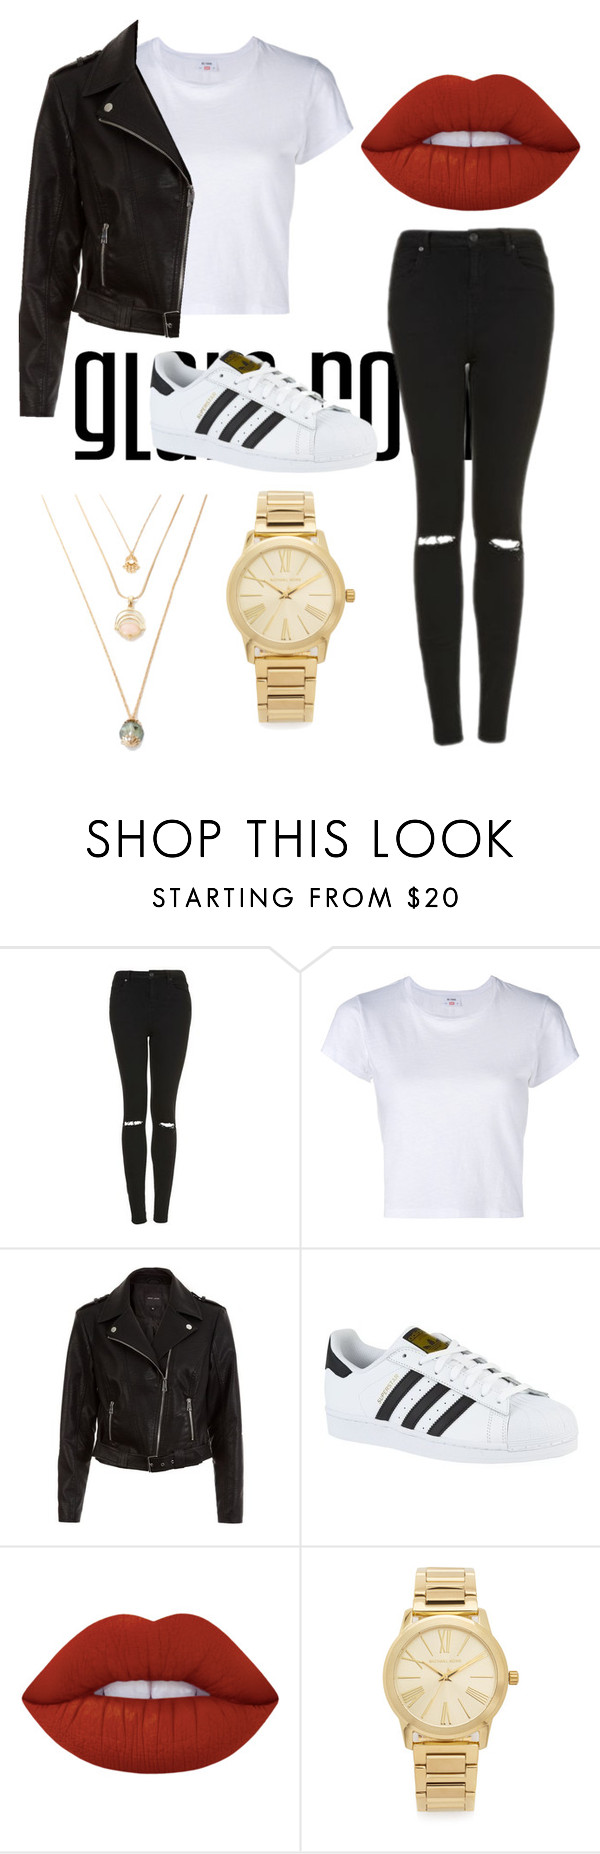 """Sin título #3"" by sarai-almaguer on Polyvore featuring moda, Topshop, RE/DONE, New Look, adidas, Lime Crime y Michael Kors"